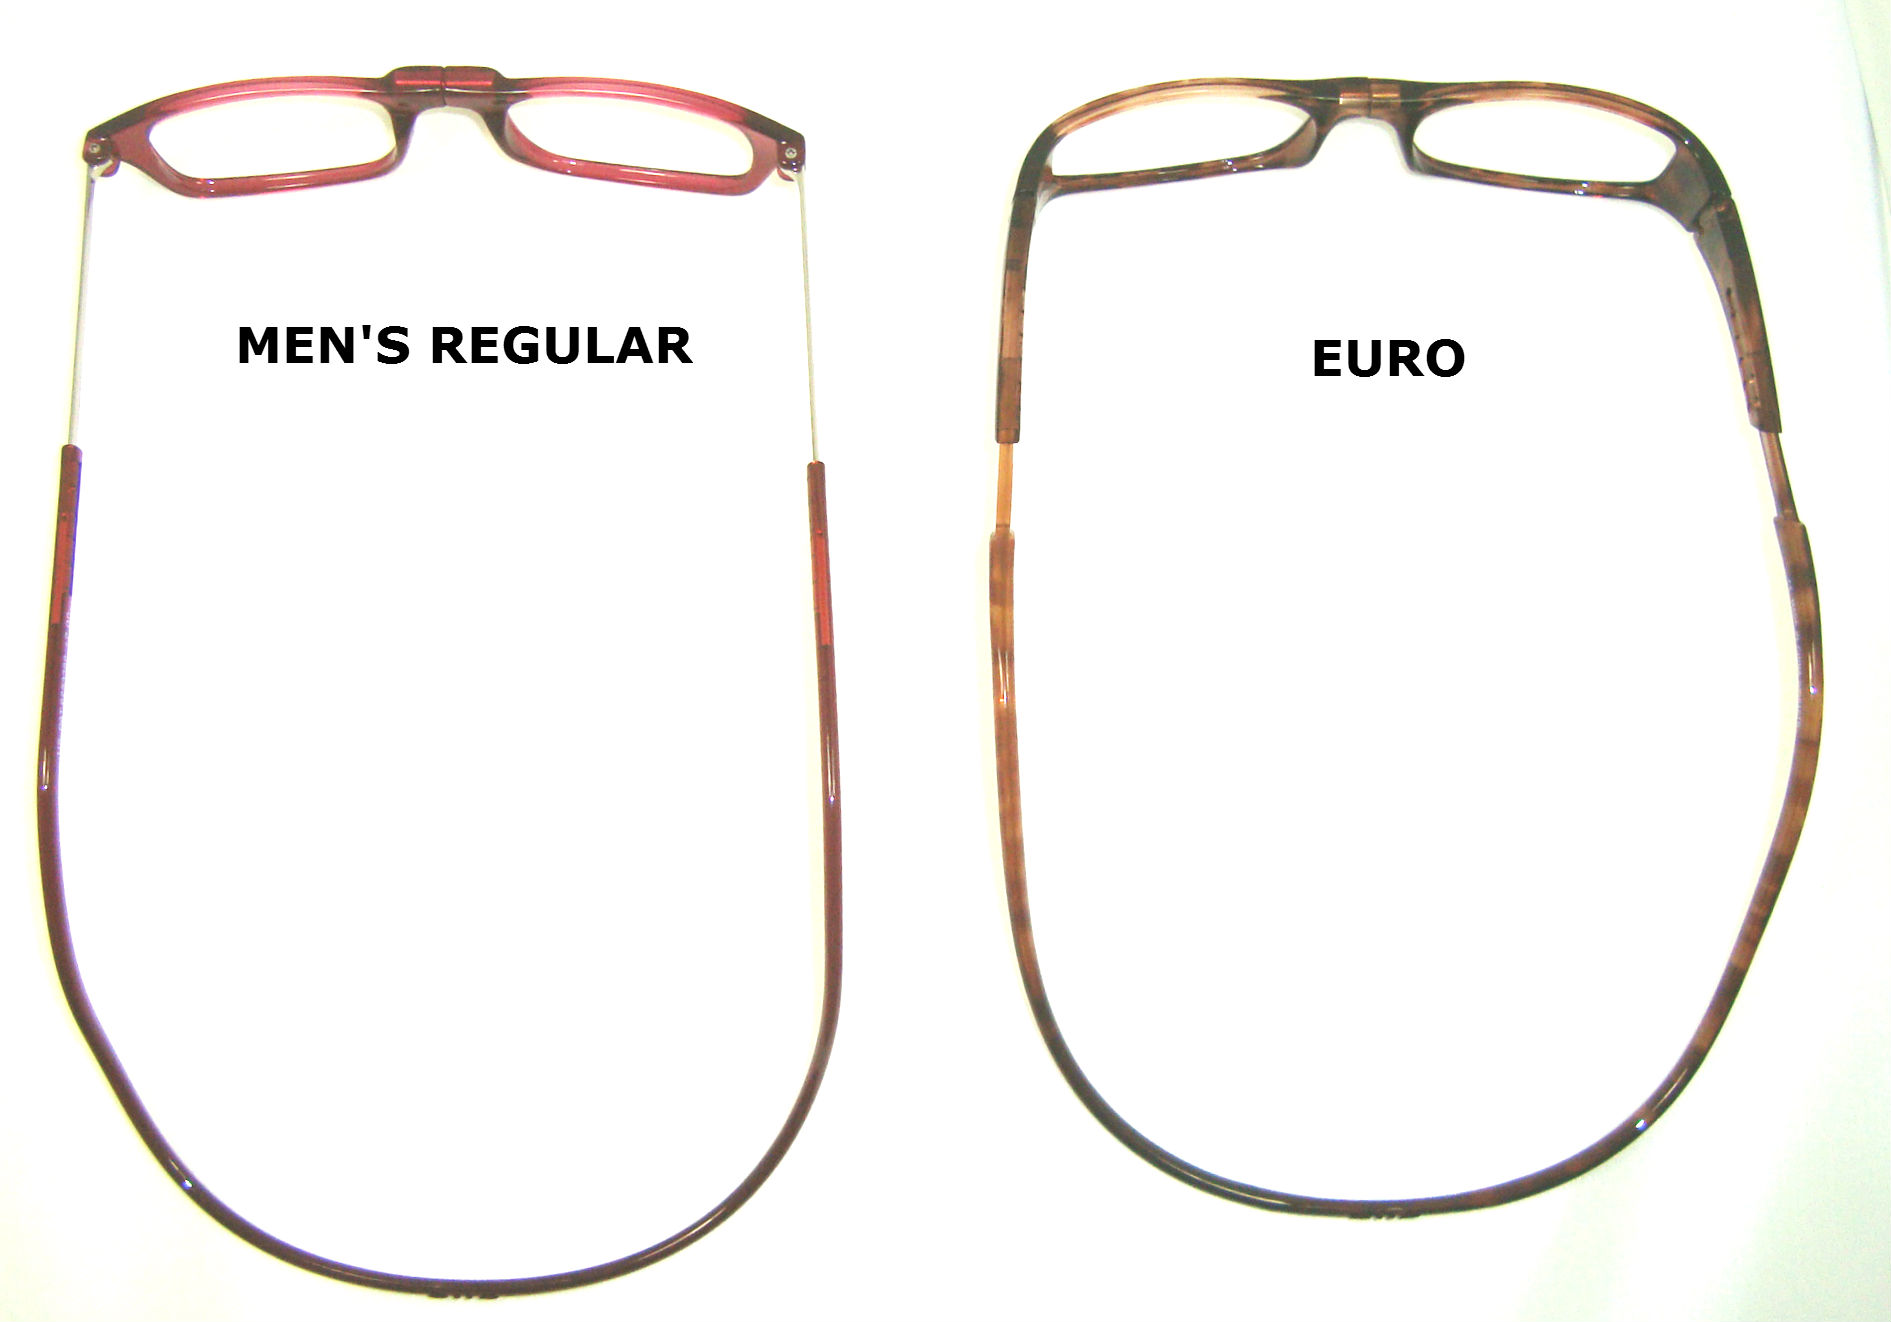 MEN'S REGULAR & EURO WEB